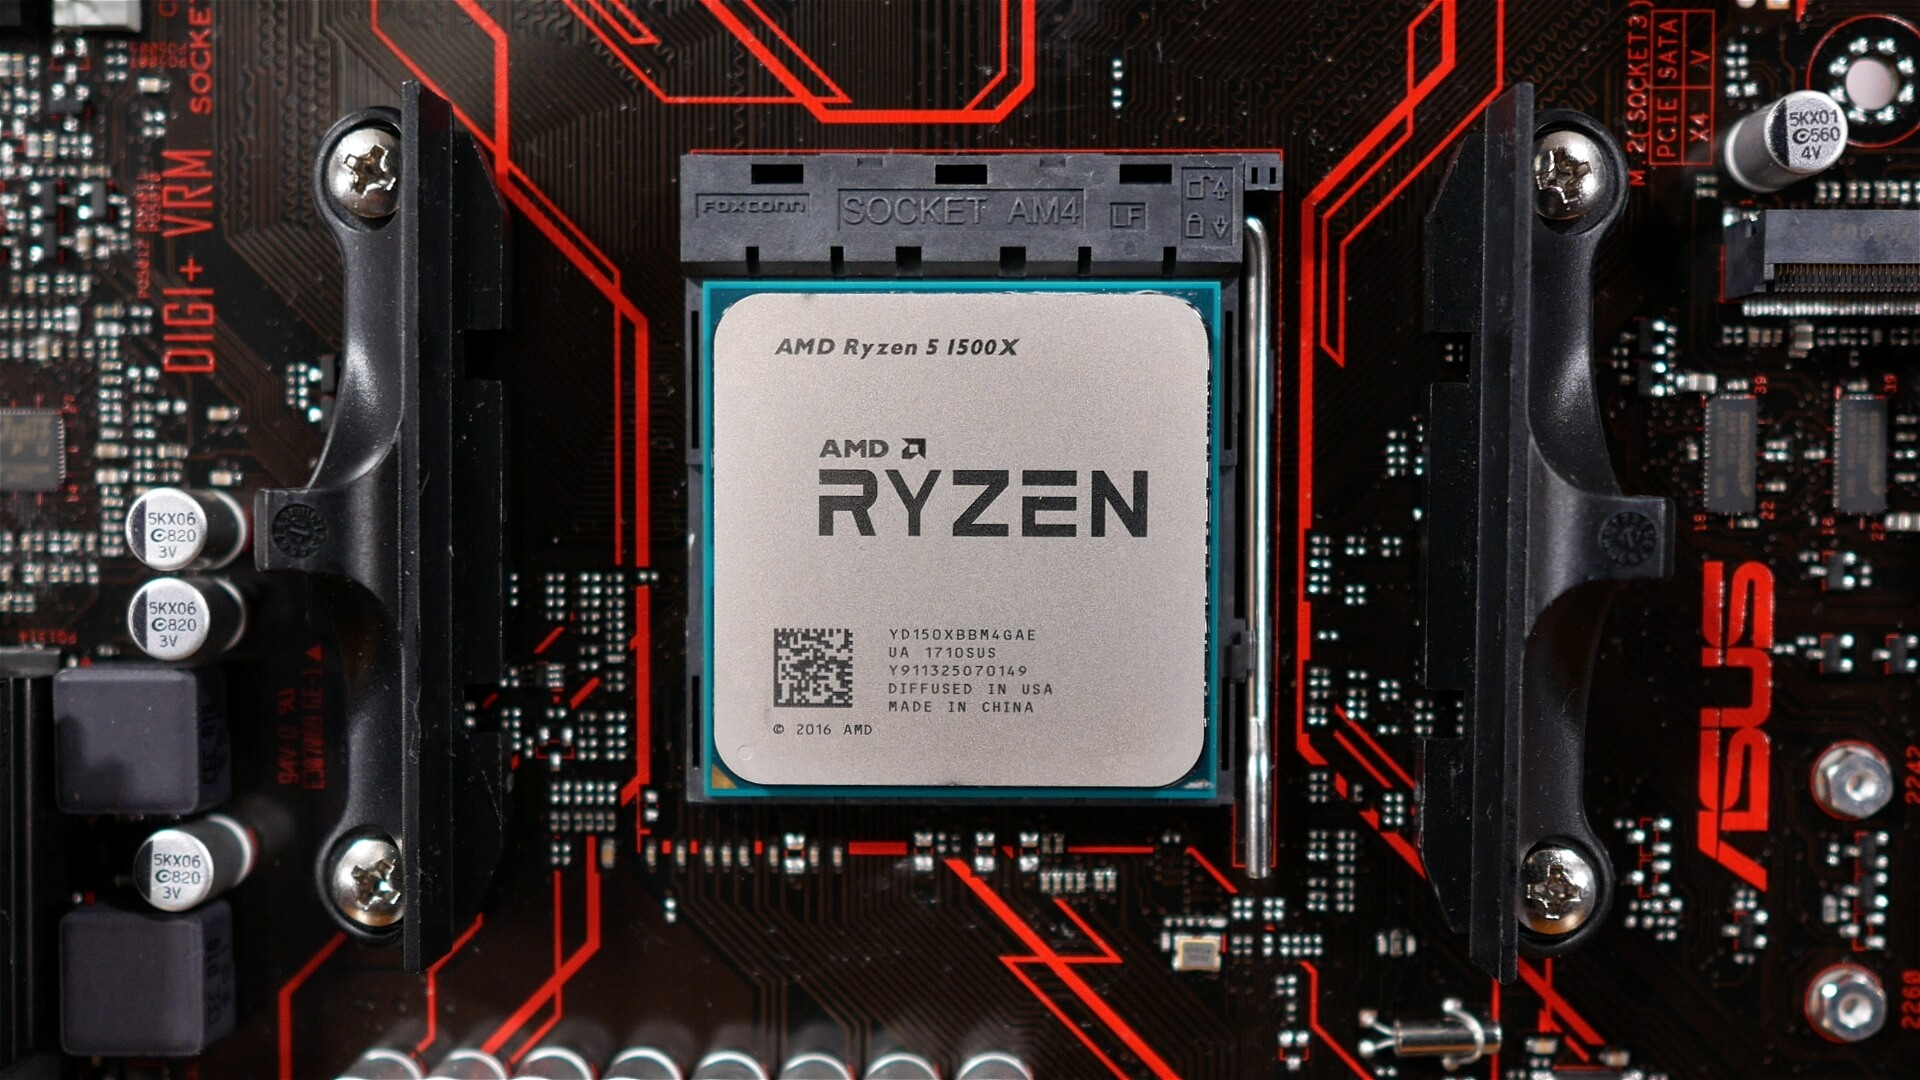 Major security flaws found in AMD chips